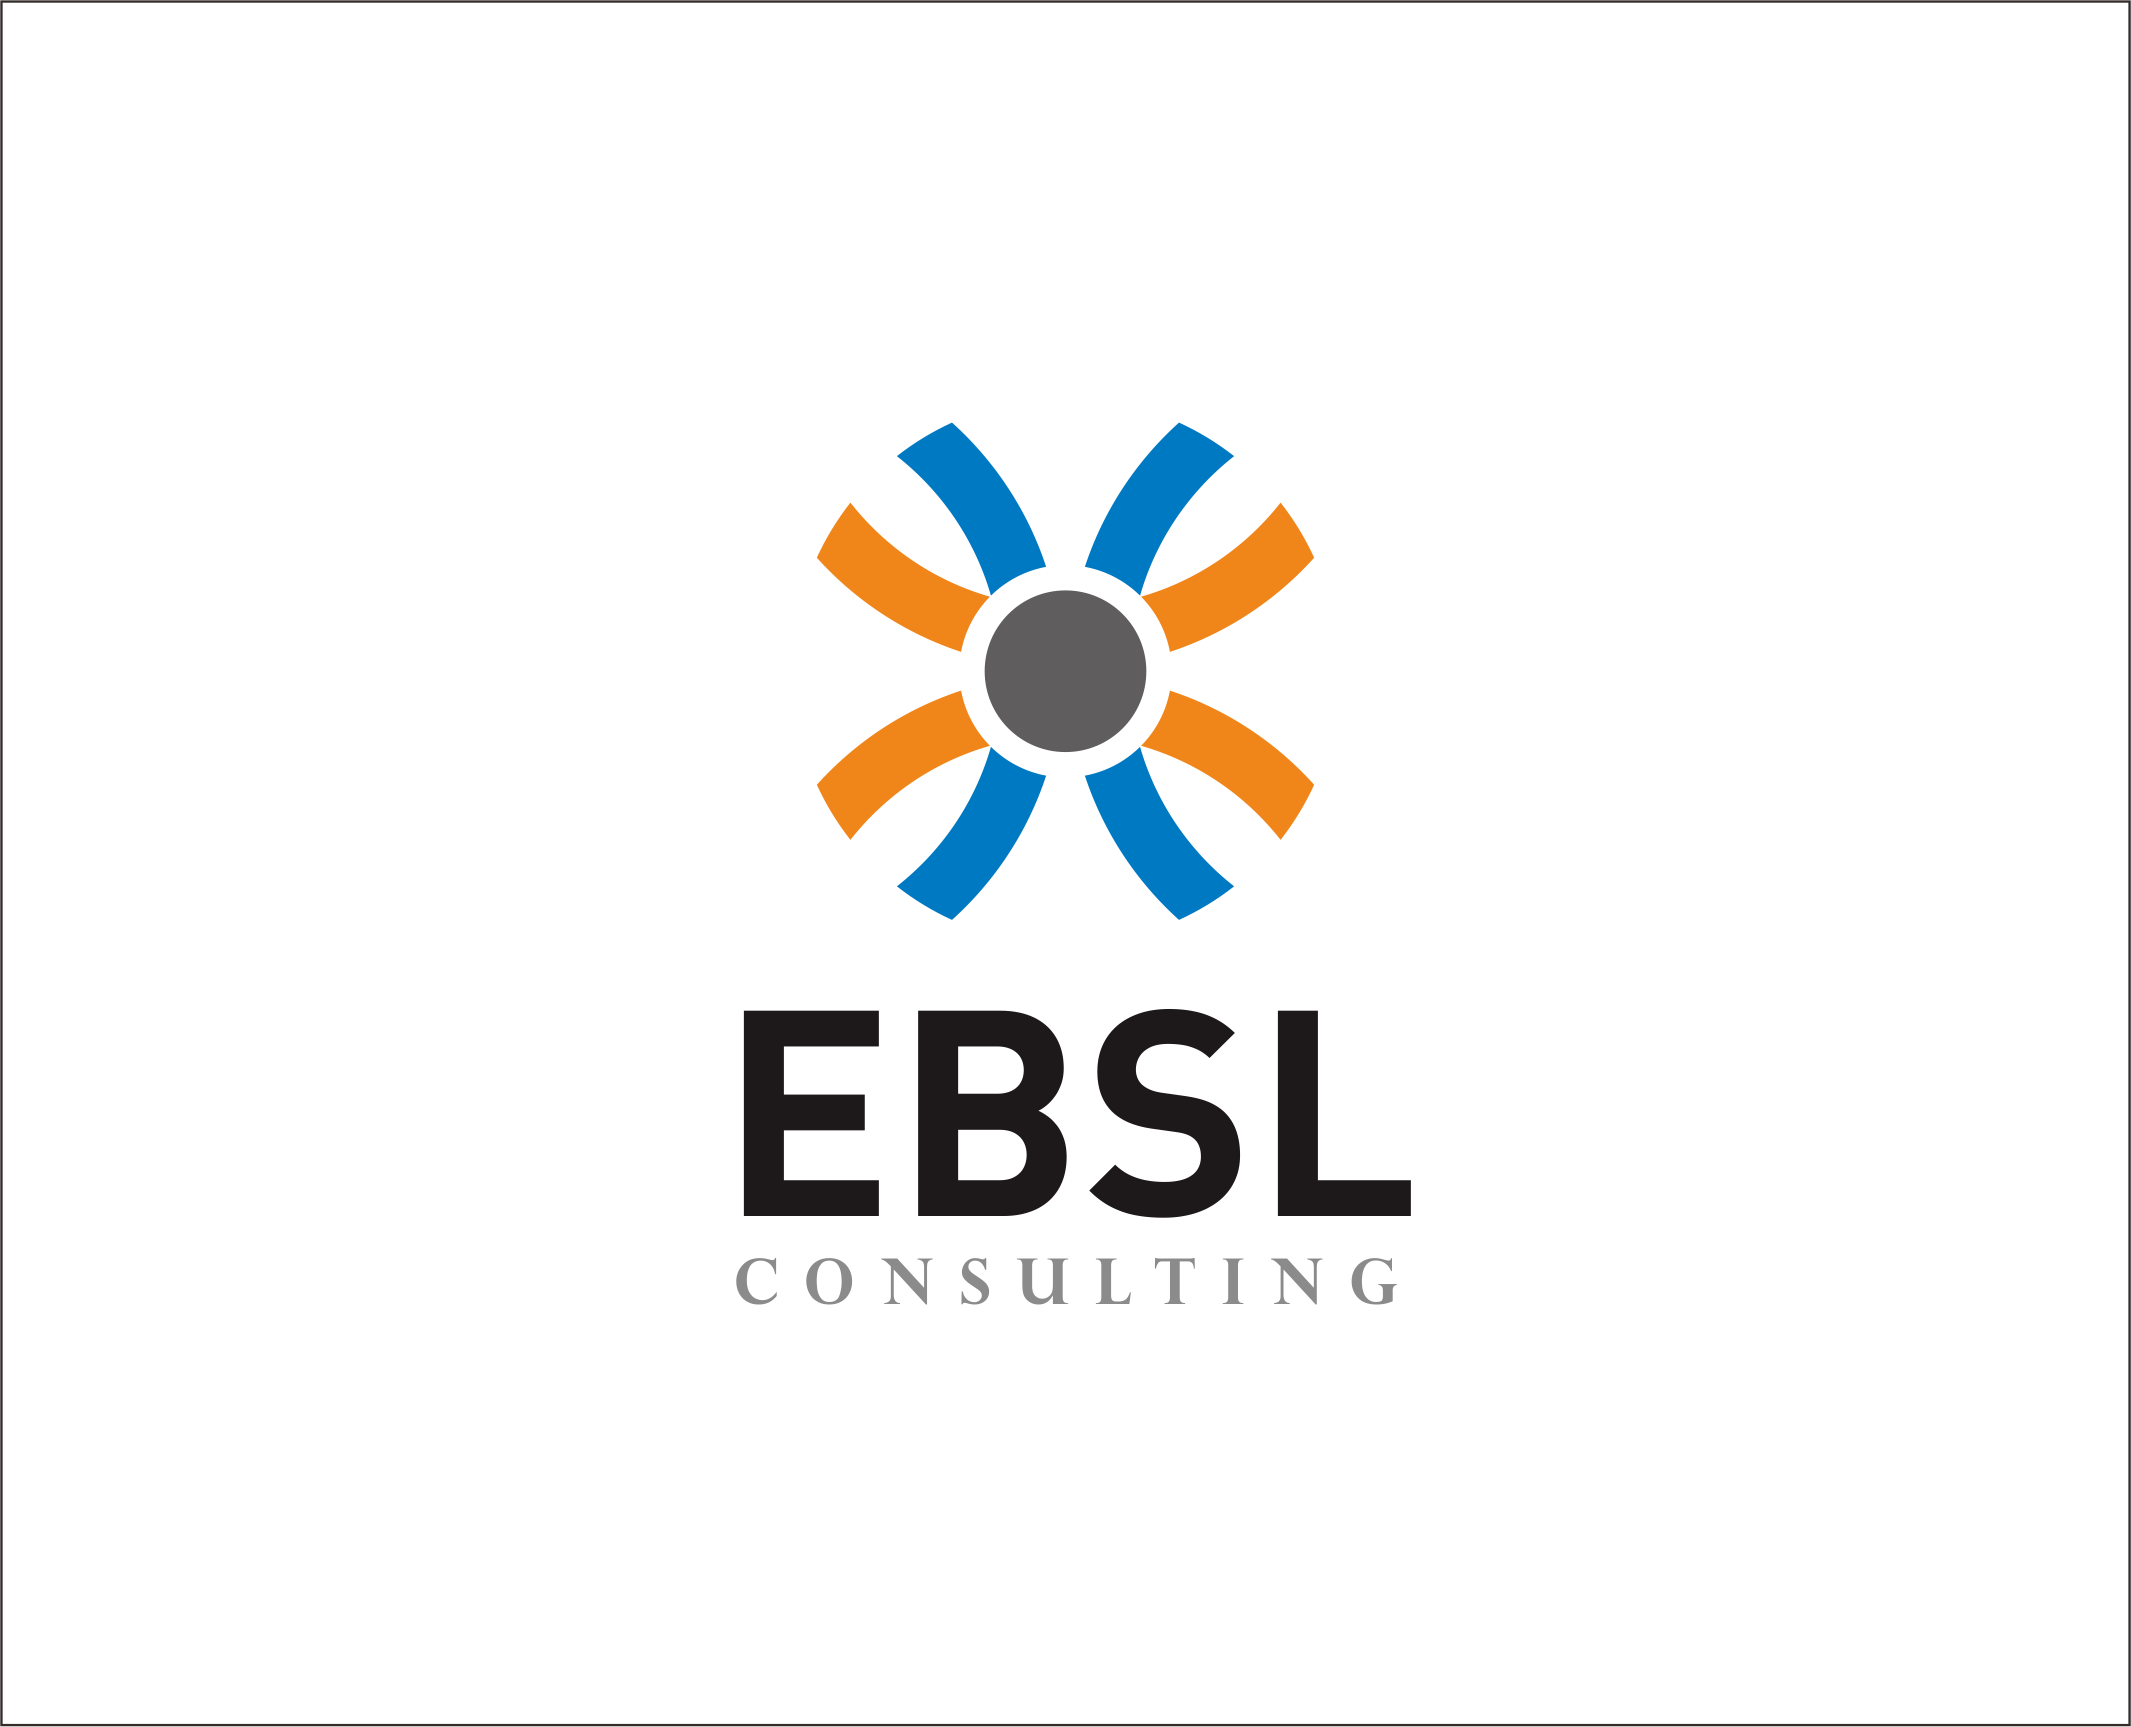 Logo Design by Armada Jamaluddin - Entry No. 18 in the Logo Design Contest EBSL Consulting Logo Design.